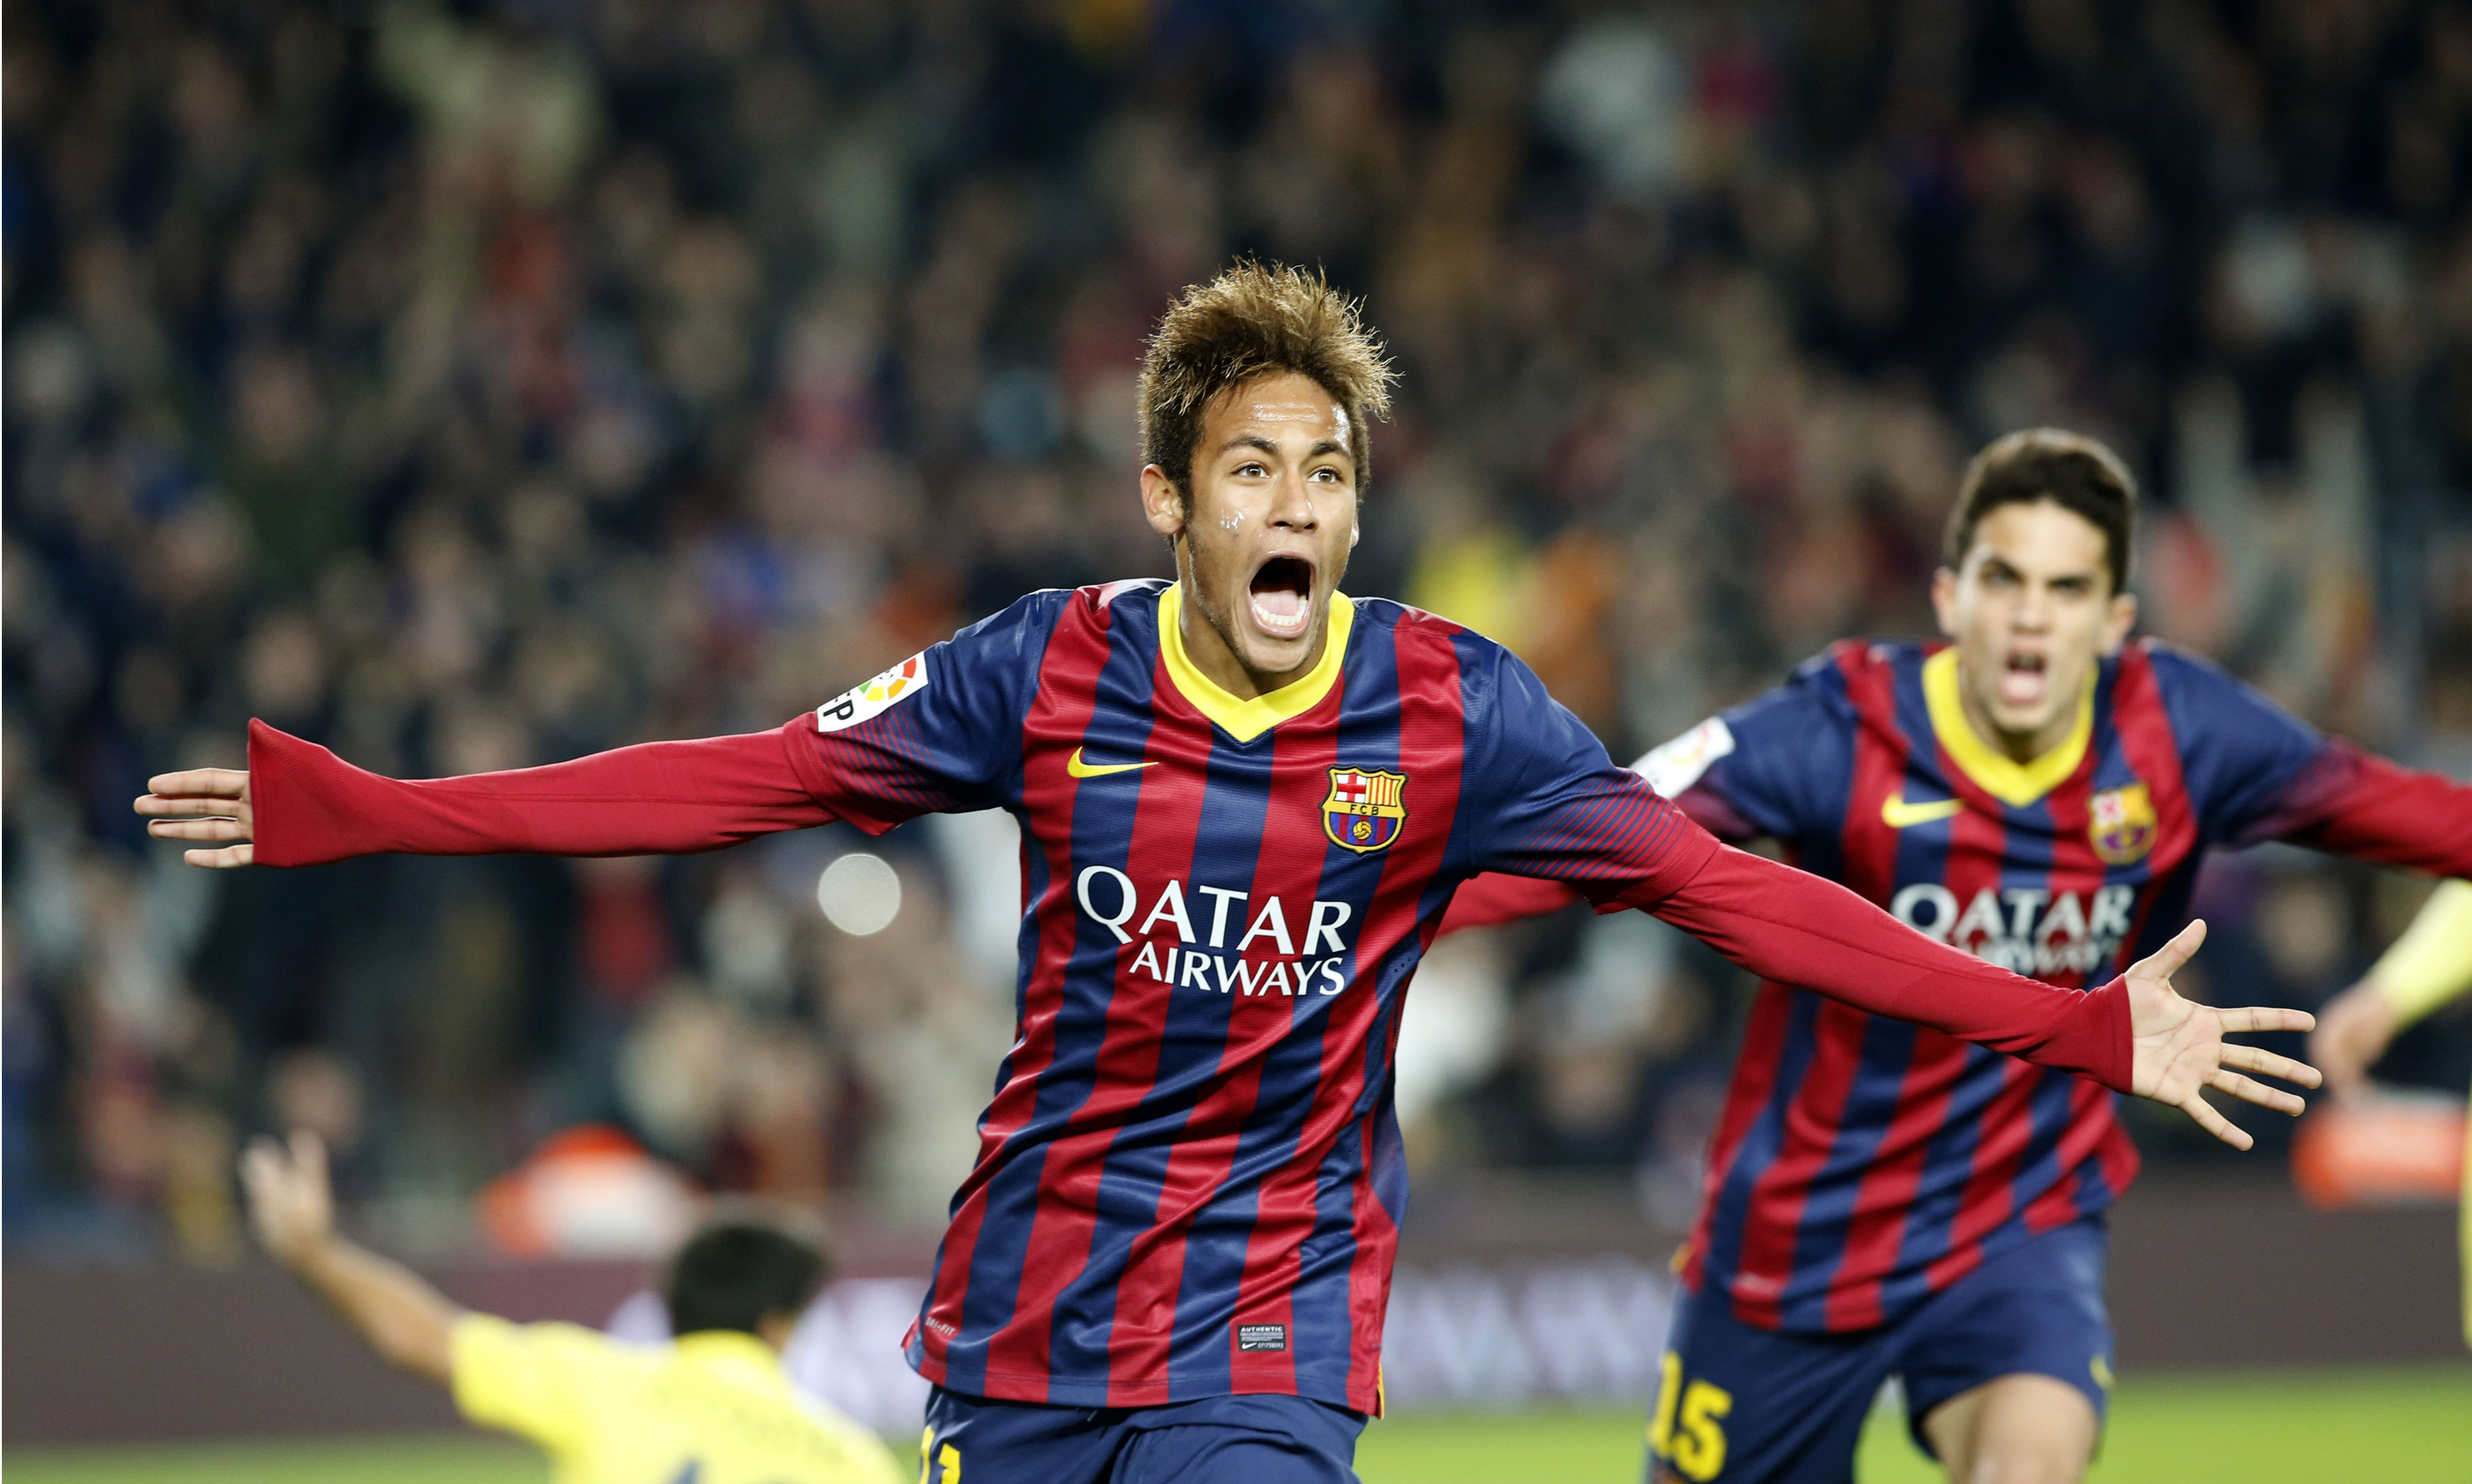 Barcelonas-Neymar-from-Brazil-celebrates-after-scoring-his-teams-second-goal-during-a-Spanish-La-Liga-soccer-match